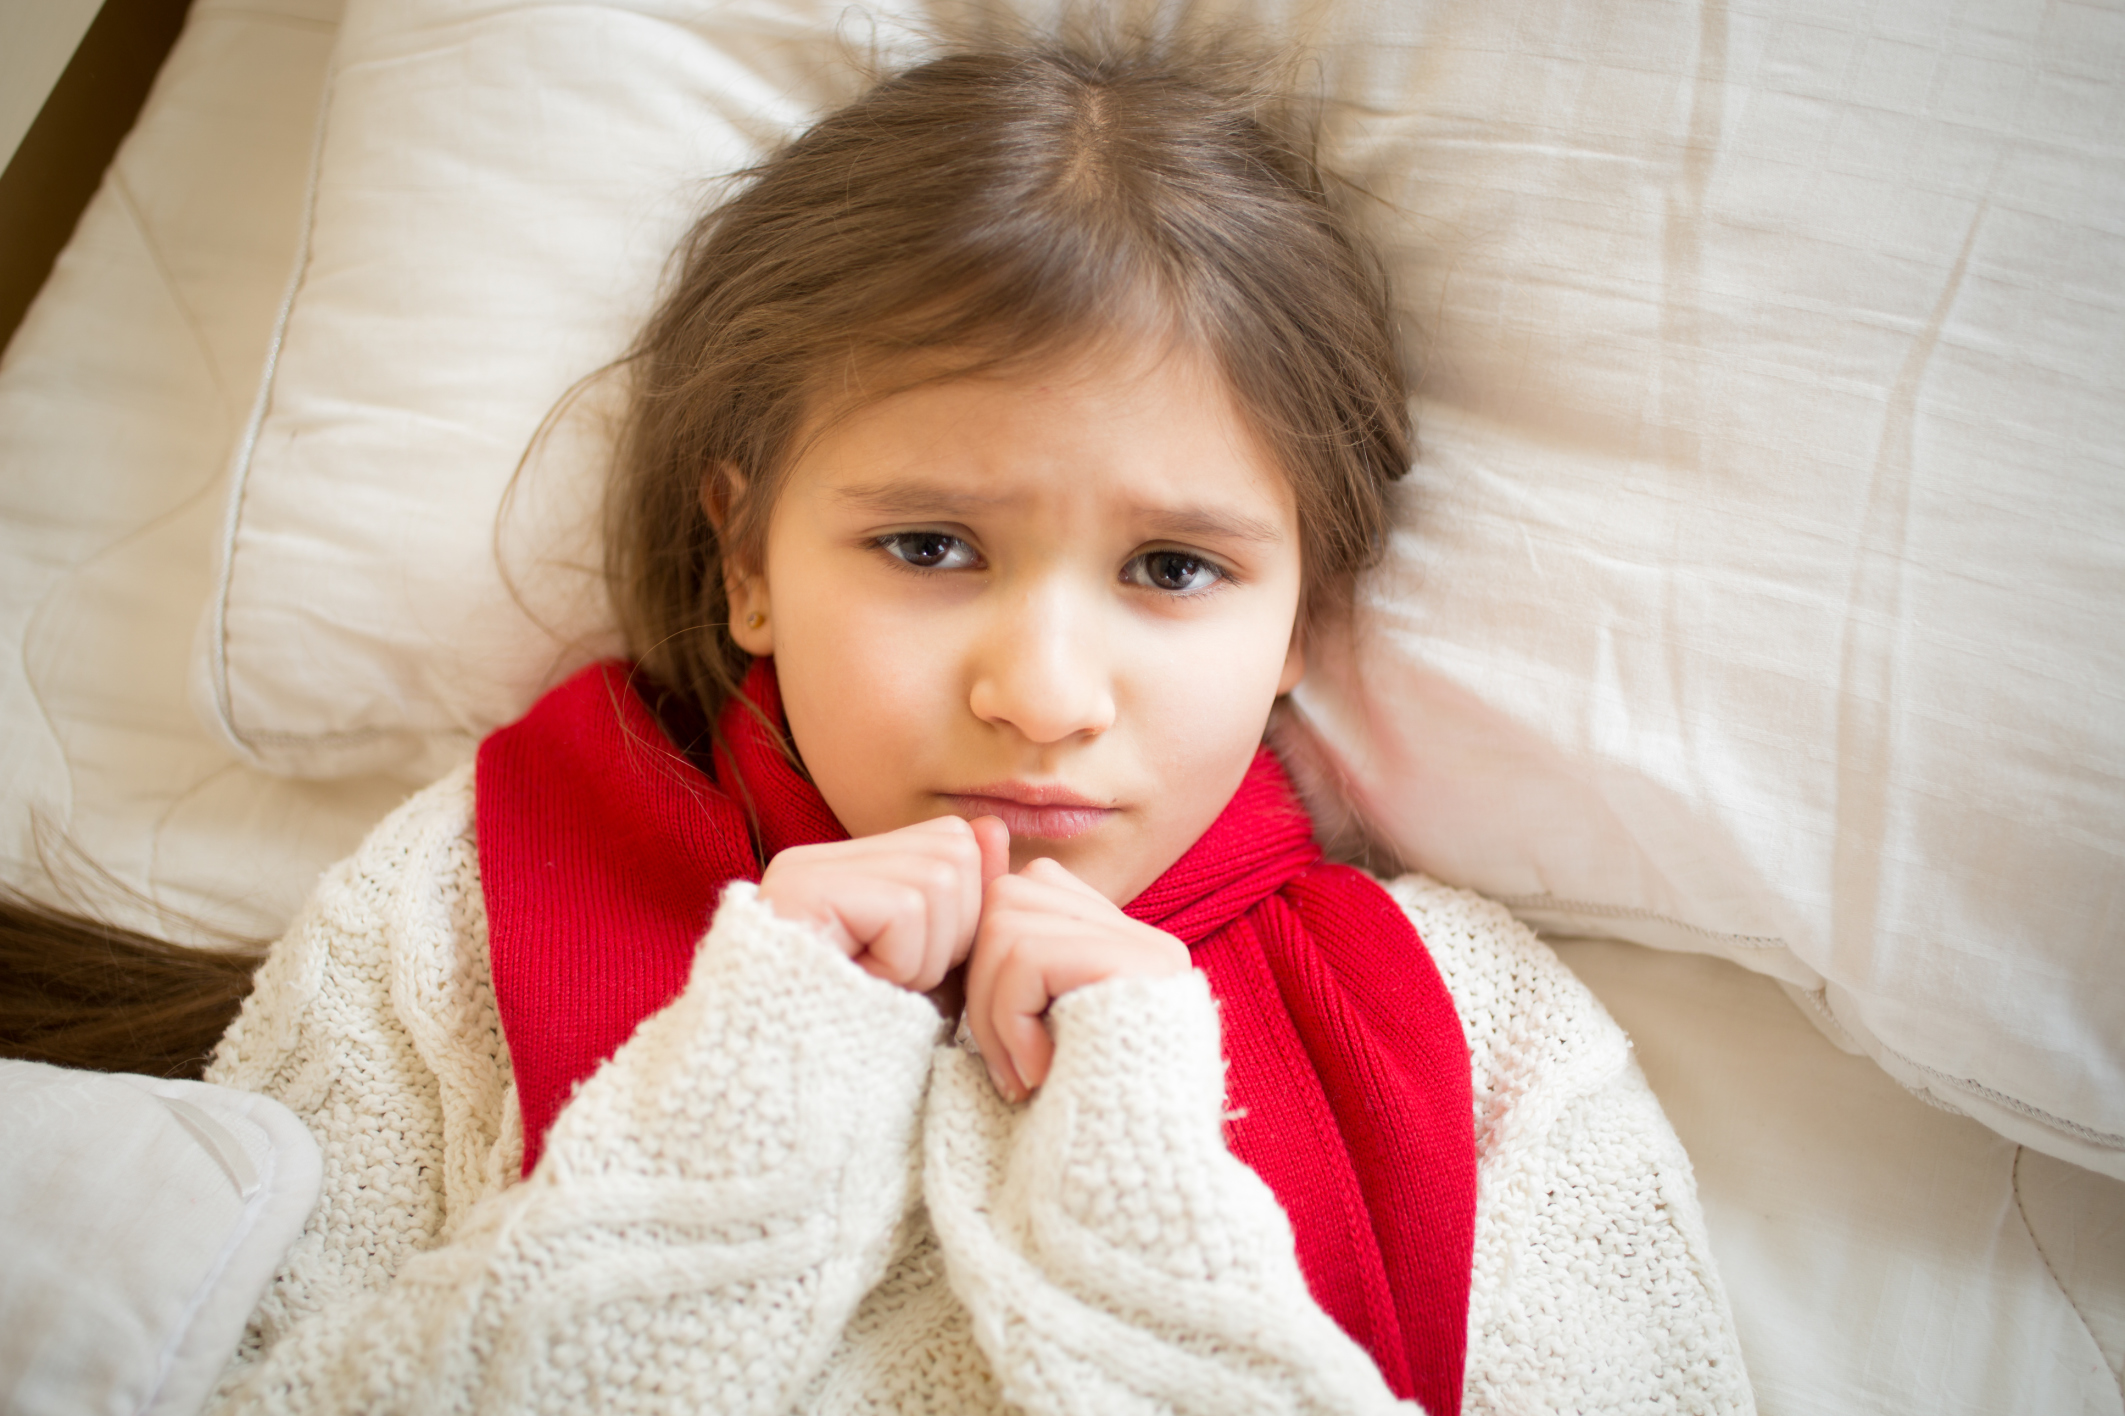 Causes of Loose Stool and Distended Stomachs in Children